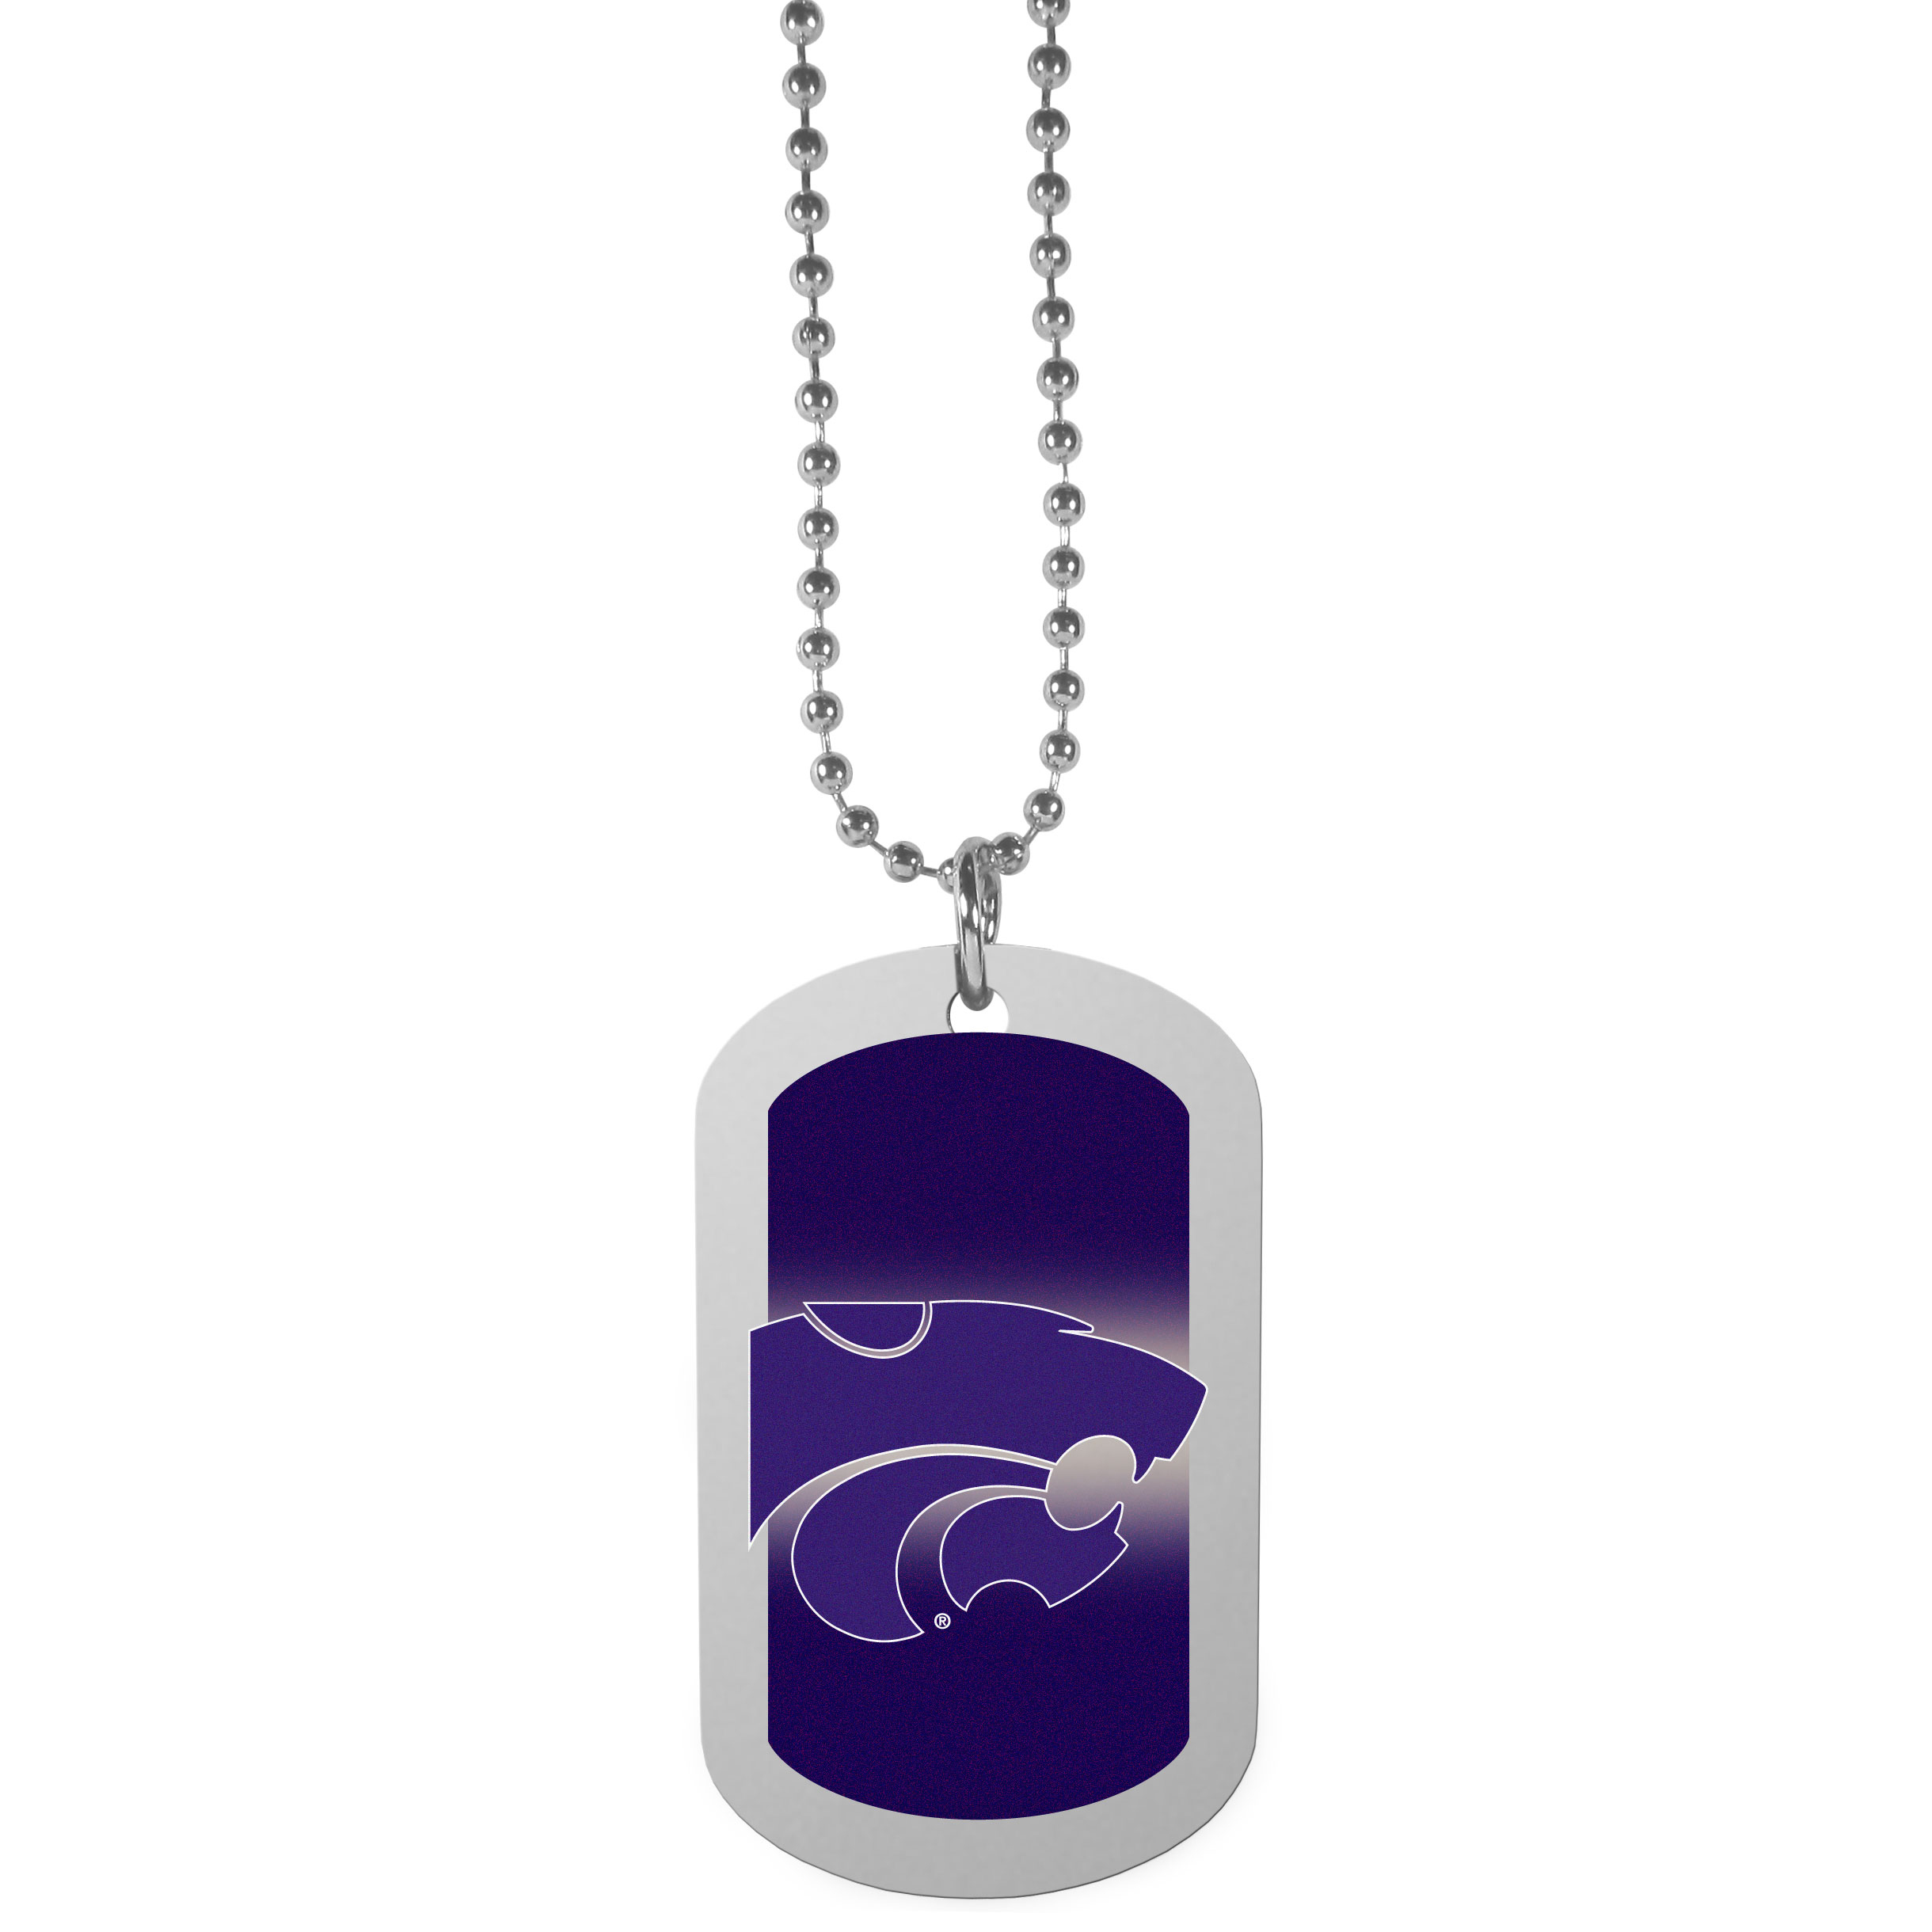 Kansas St. Wildcats Team Tag Necklace - Dog tag necklaces are a fashion statement that is here to stay. The sporty version of the classic tag features a gradient print in team colors featuring a full color team logo over a high polish tag to create a bold and sporty look. The tag comes on a 26 inch ball chain with a ball and joint clasp. Any Kansas St. Wildcats would be proud to wear this attractive fashion accessory.